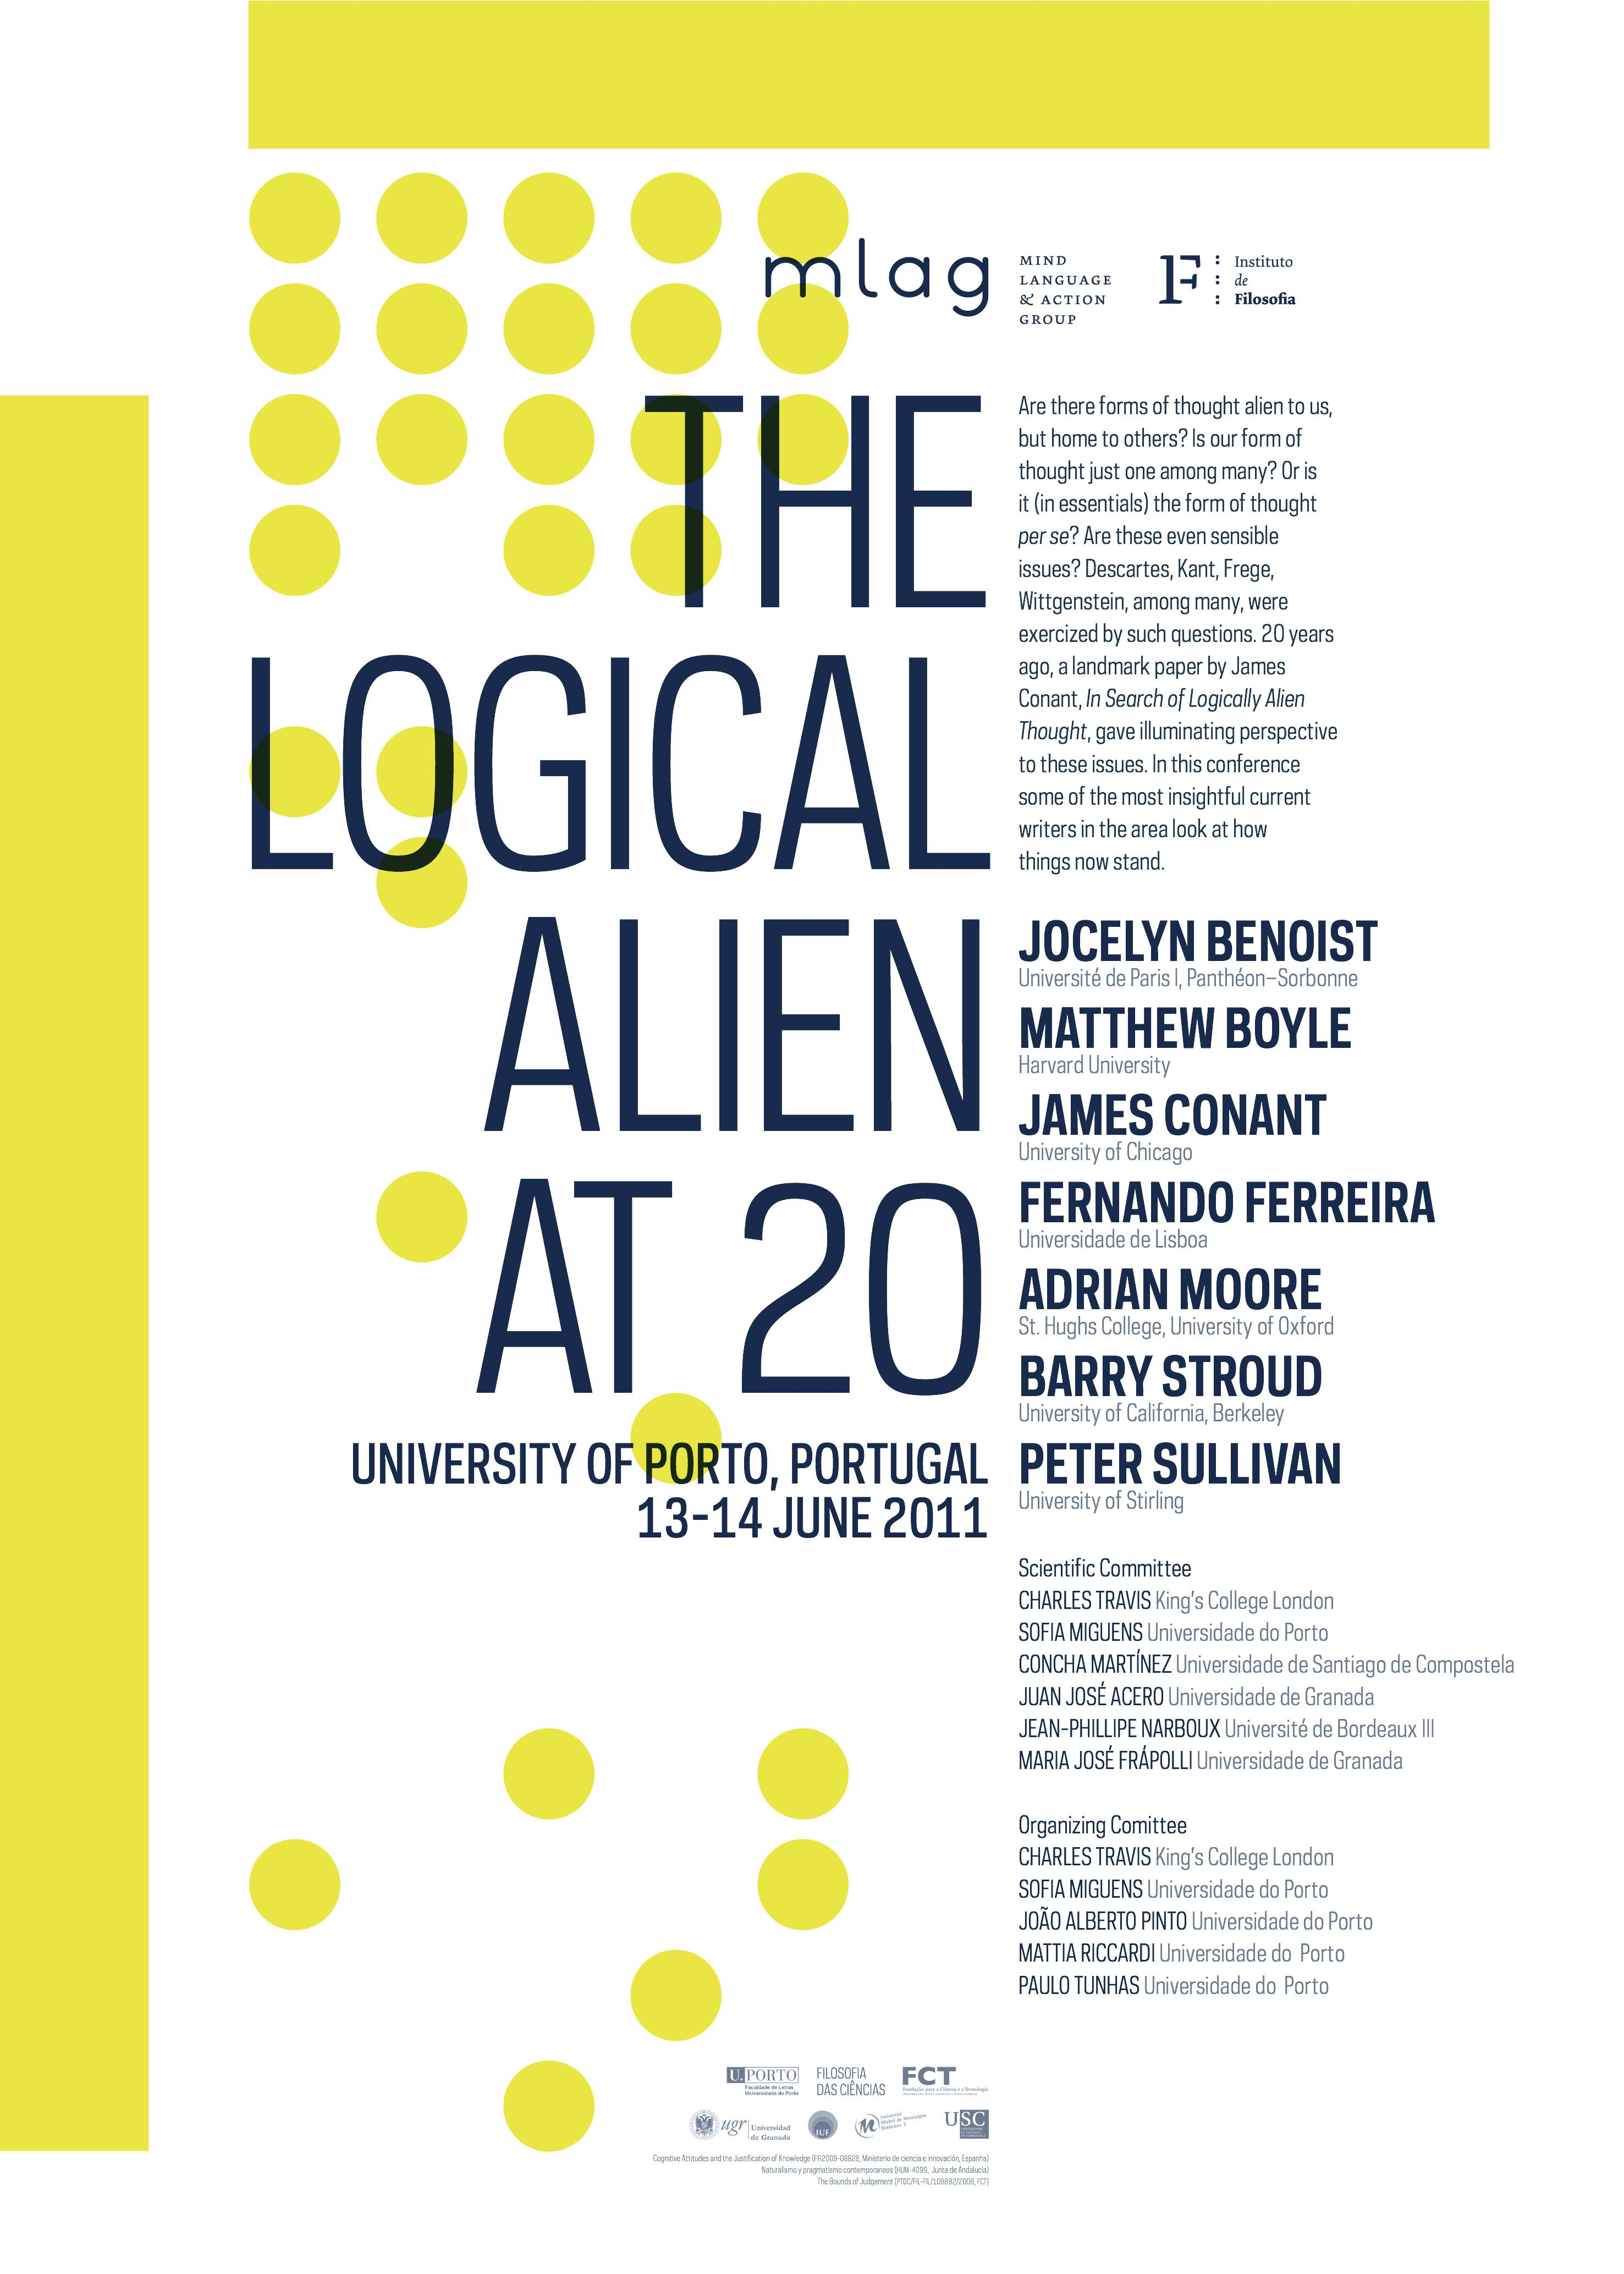 The Logical Alien at 20